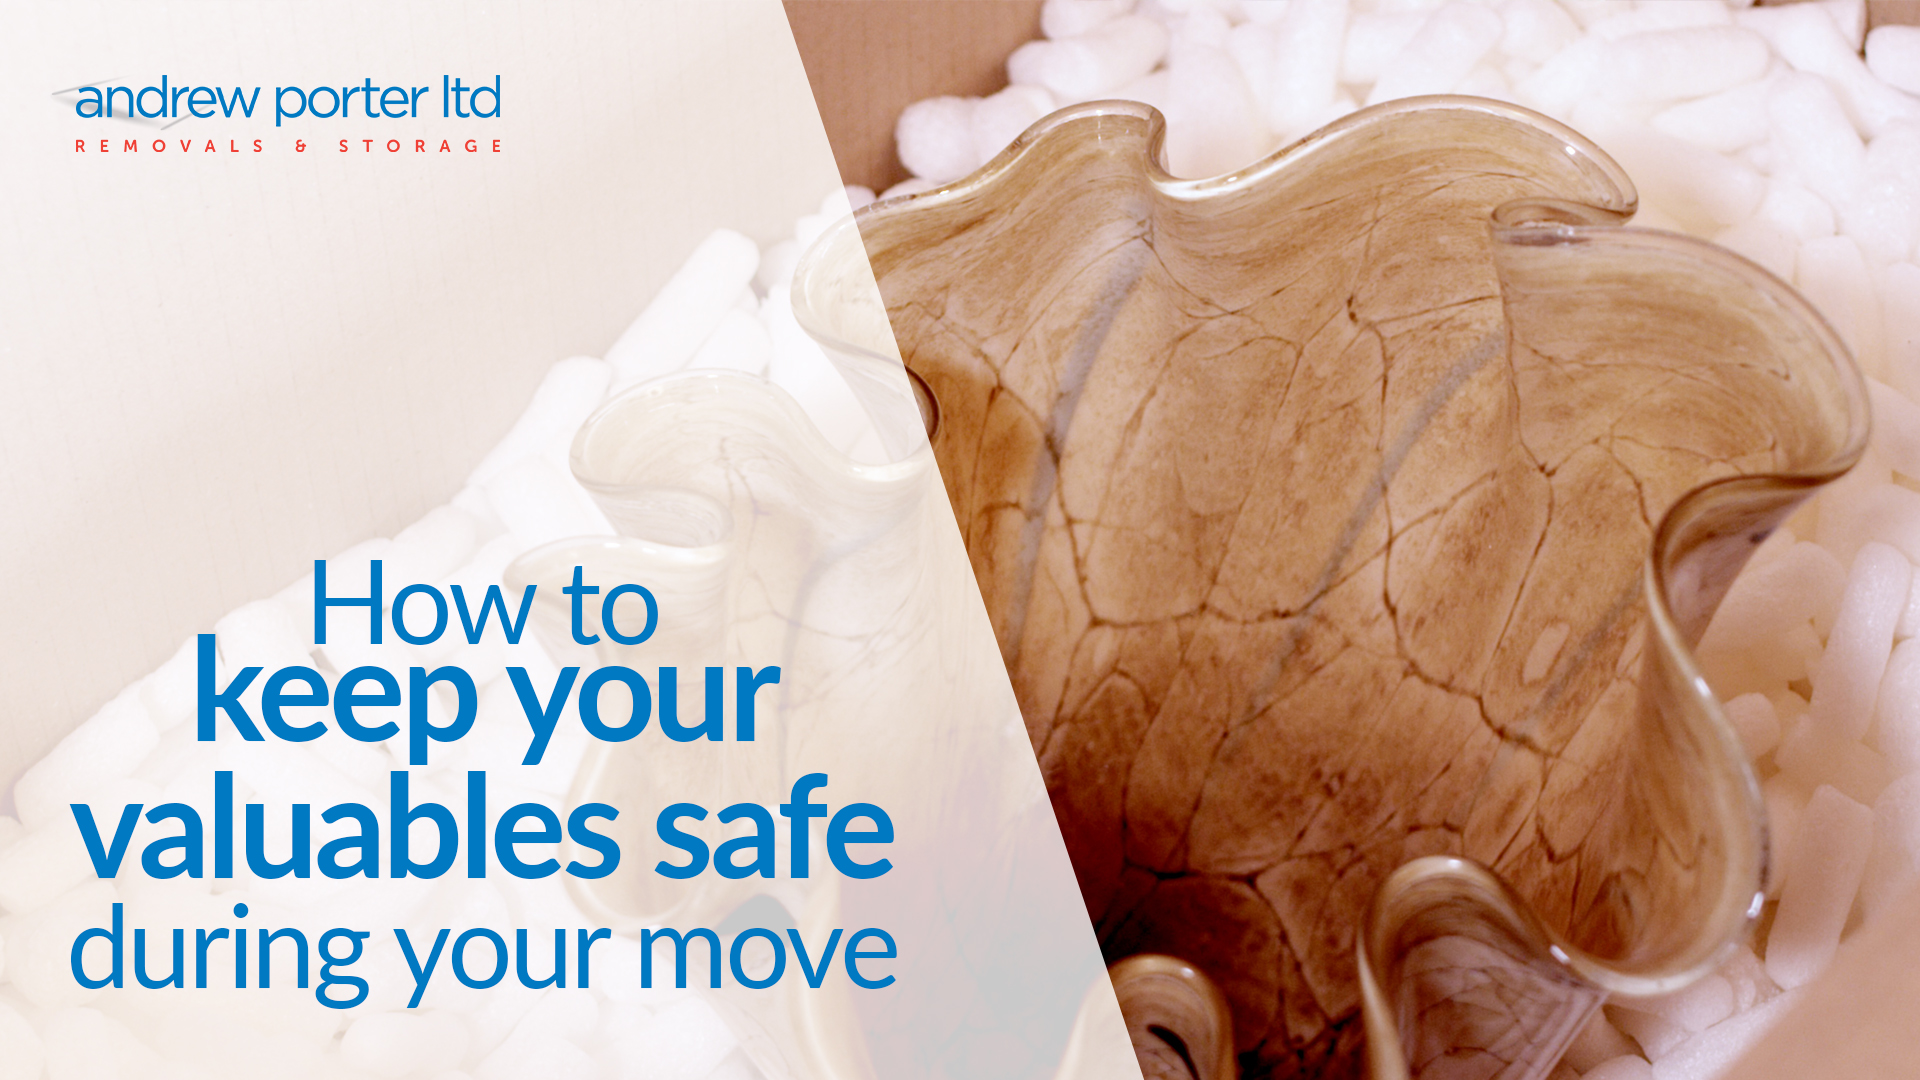 Keeping valuables safe during your move